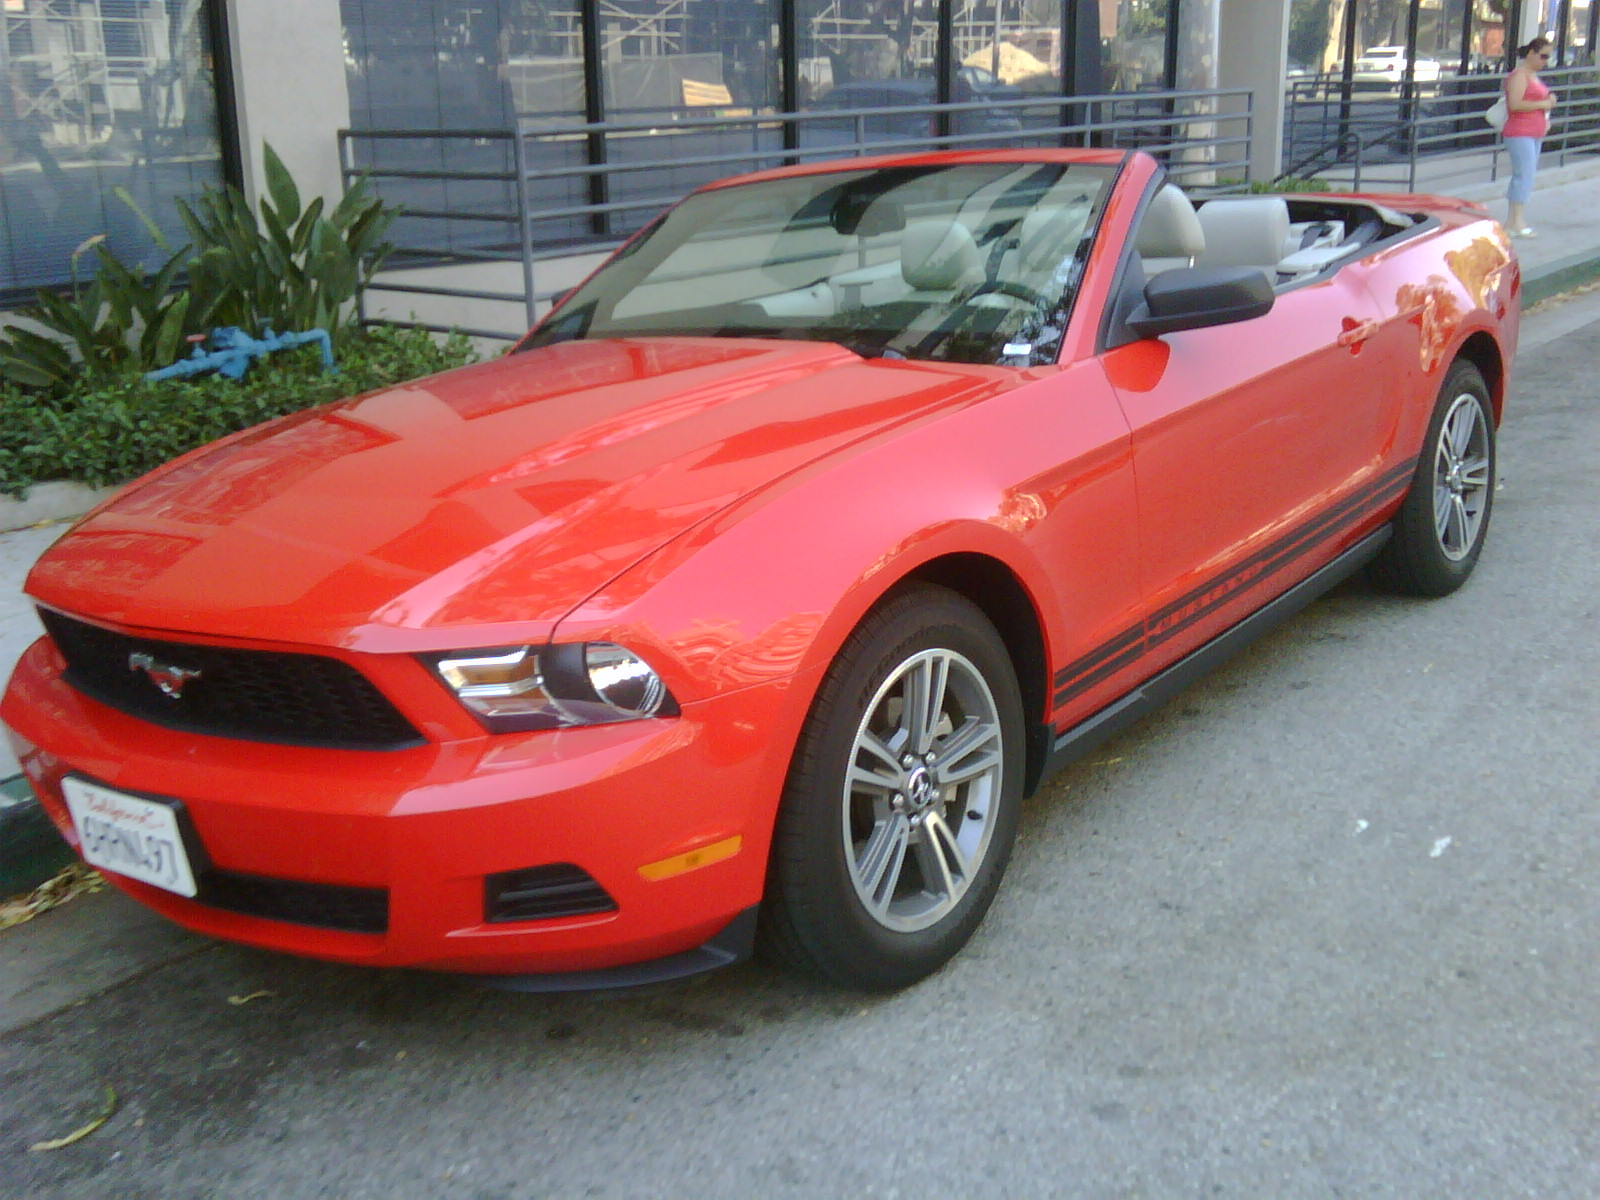 Rental Mustang Convertible Gessel On